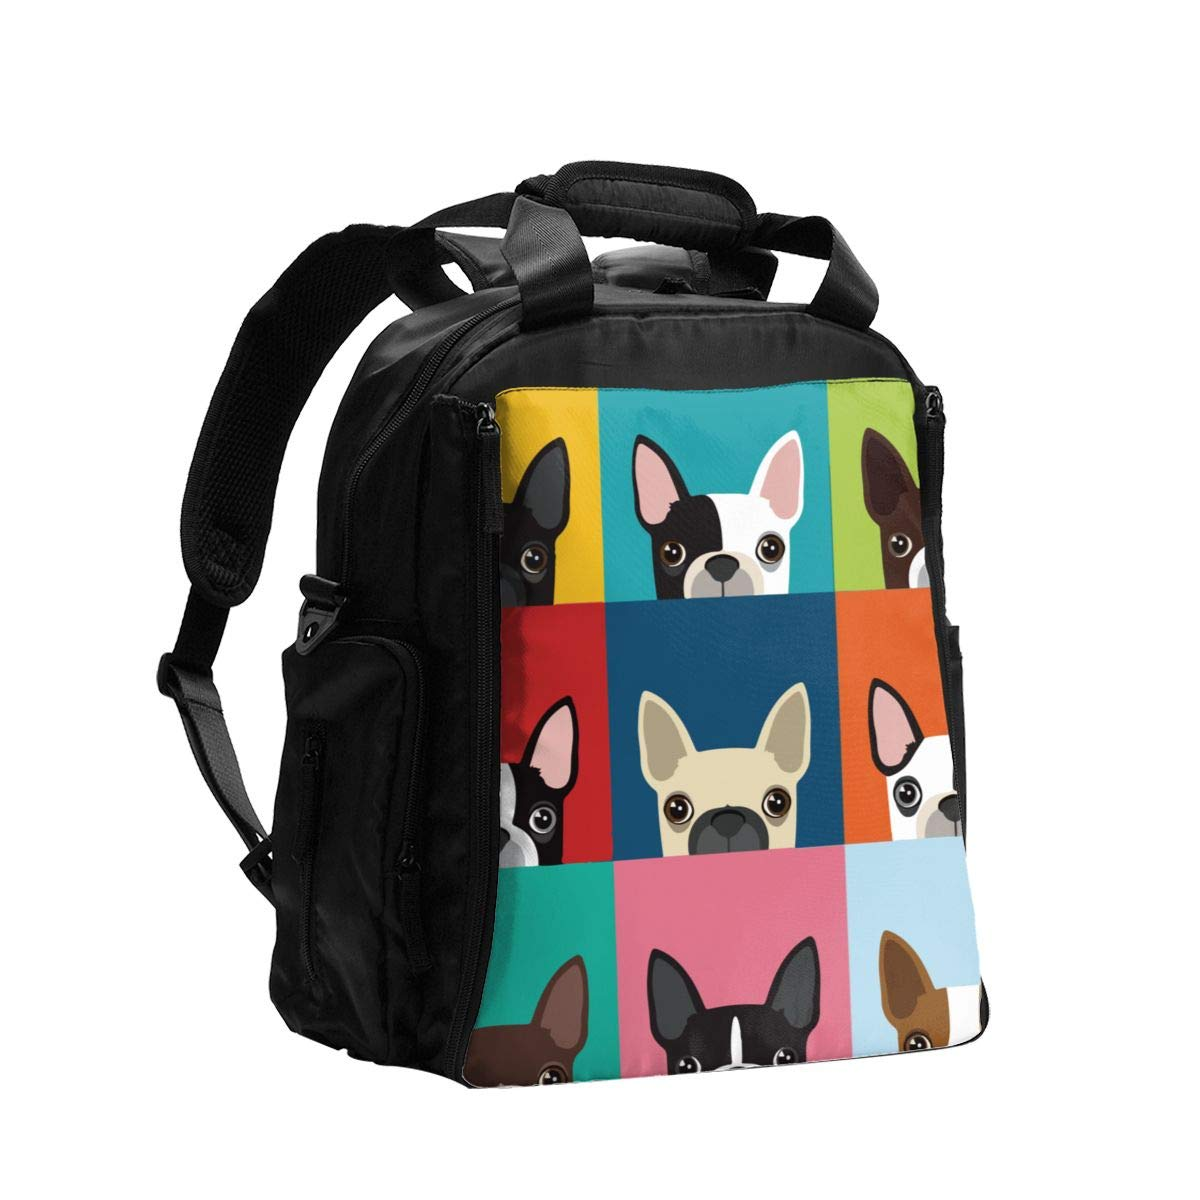 Illustration Boston Terrier Diaper Bag Backpack Travel Backpack Maternity Baby Changing Bags